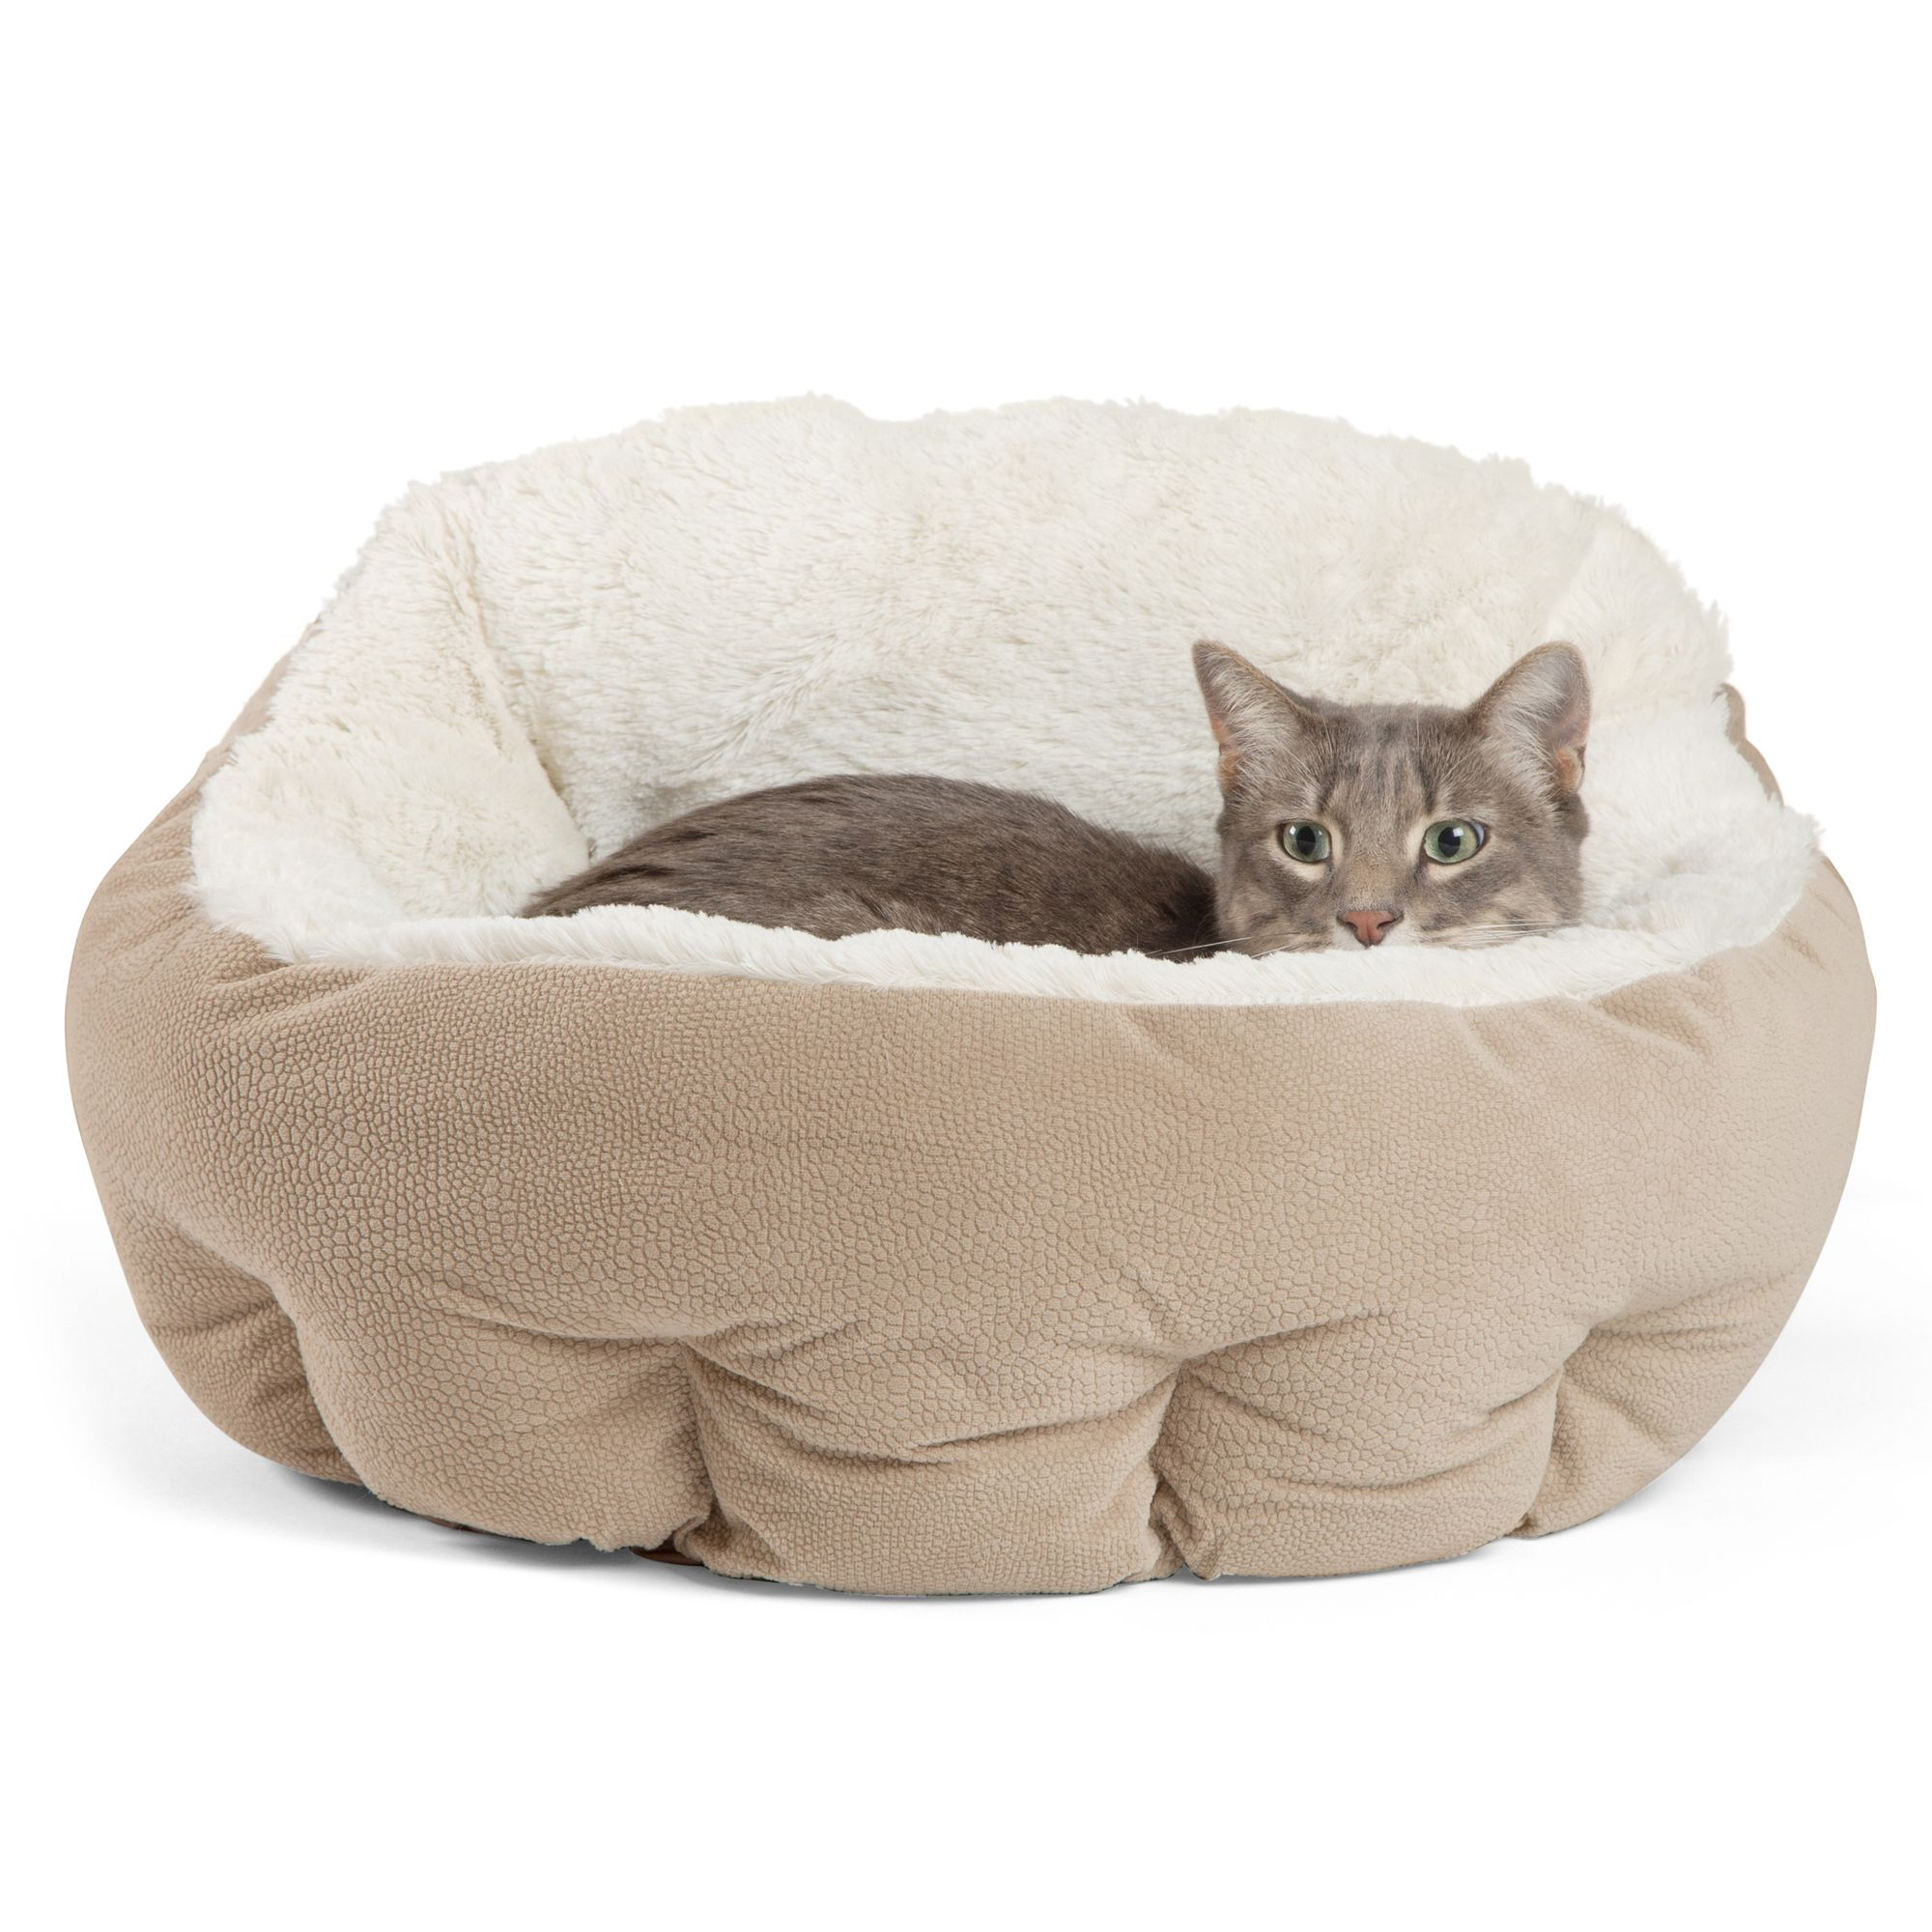 Best Friends By Sheri Deep Dish Cuddler Illan Pet Bed Size 17l X 19w X 11h Wheat